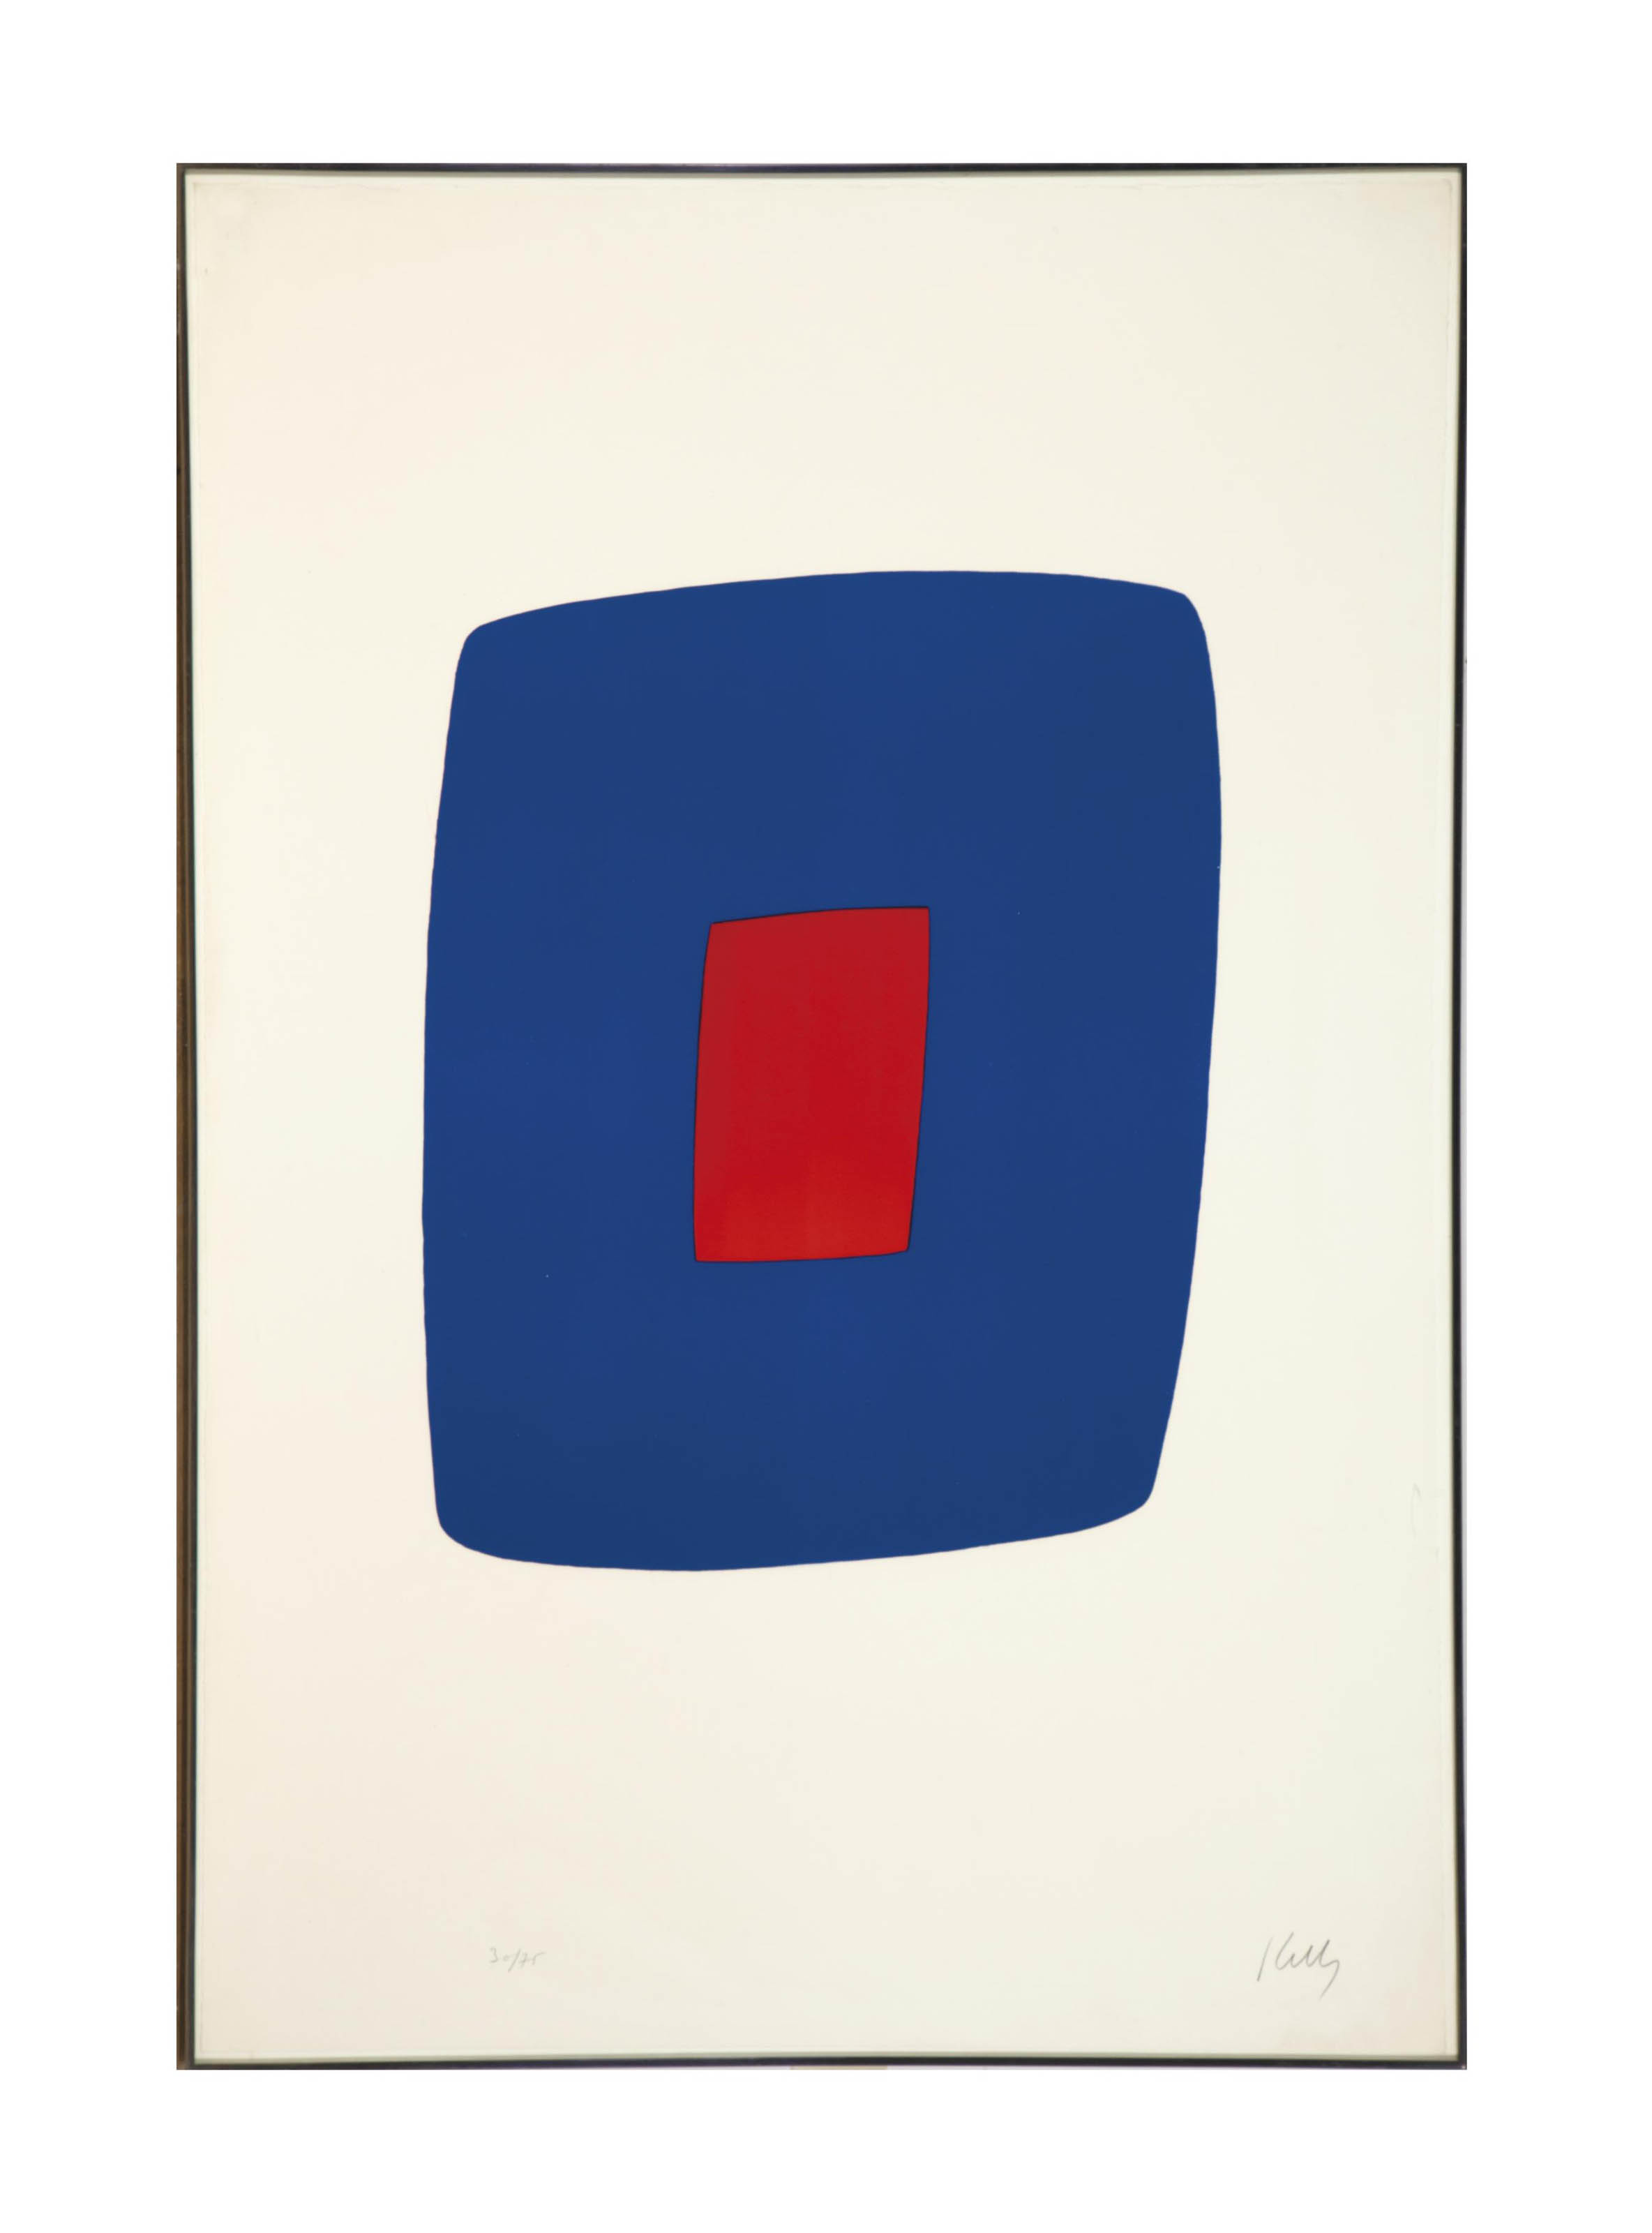 Ellsworth Kelly (b. 1923)